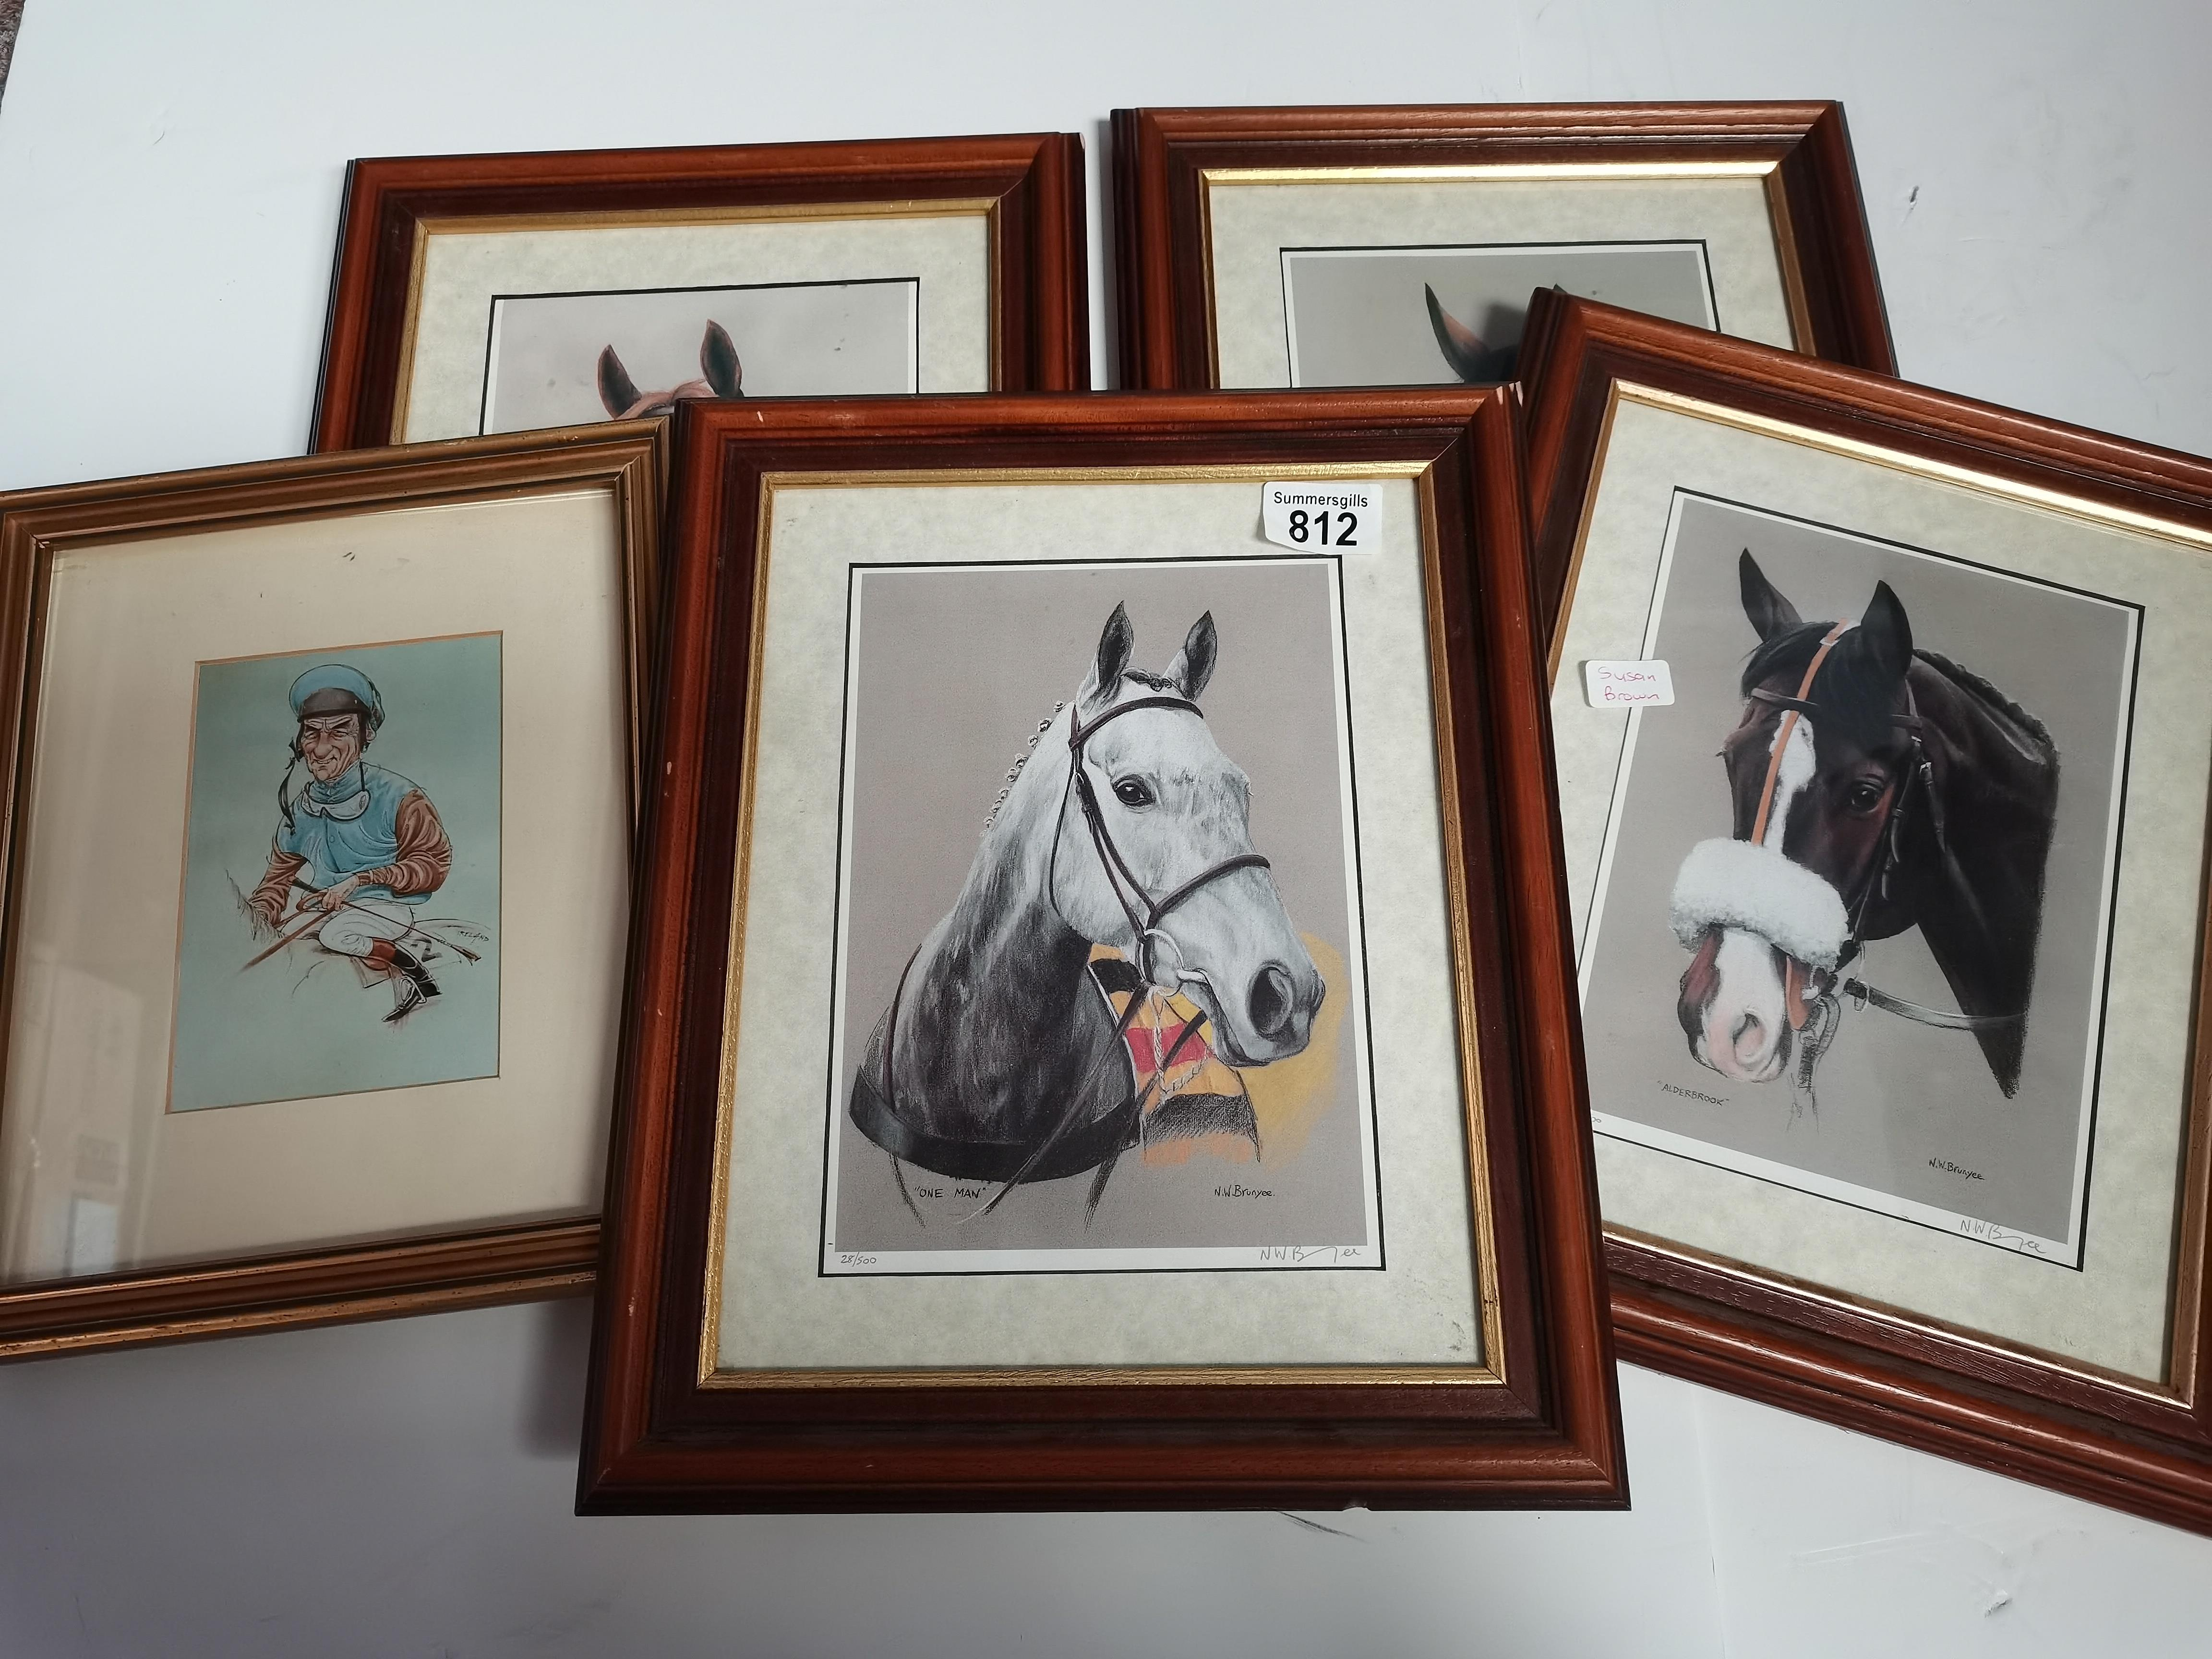 """4 Small Paintings of Horses by """"NW Brunyee"""", 1 Print of Nginsky 1 John Austin Print 2 other Pictures - Image 7 of 8"""